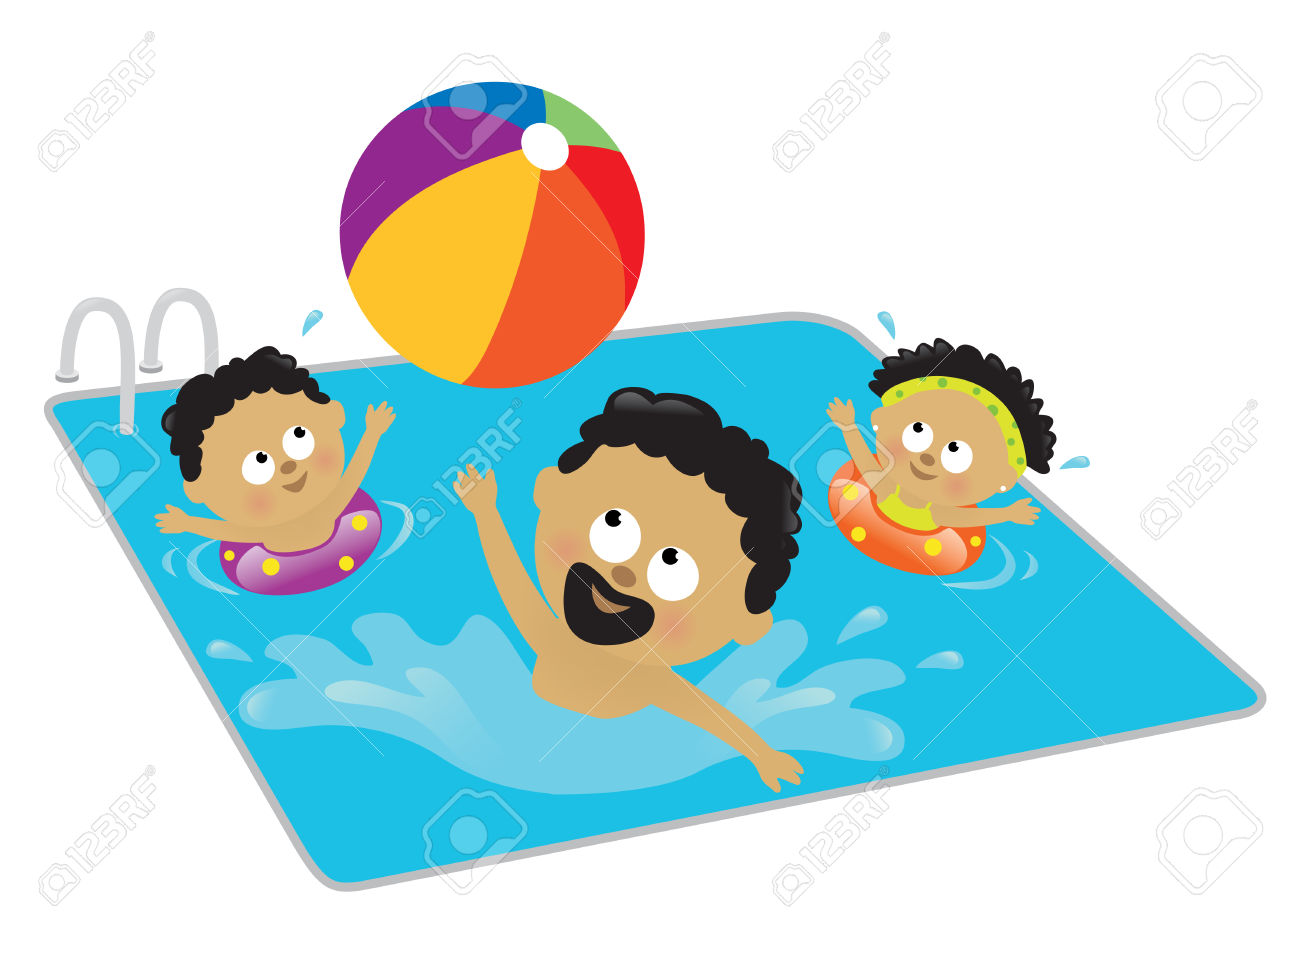 Swimming pool clipart  children swimming in pool clipart - Clipground